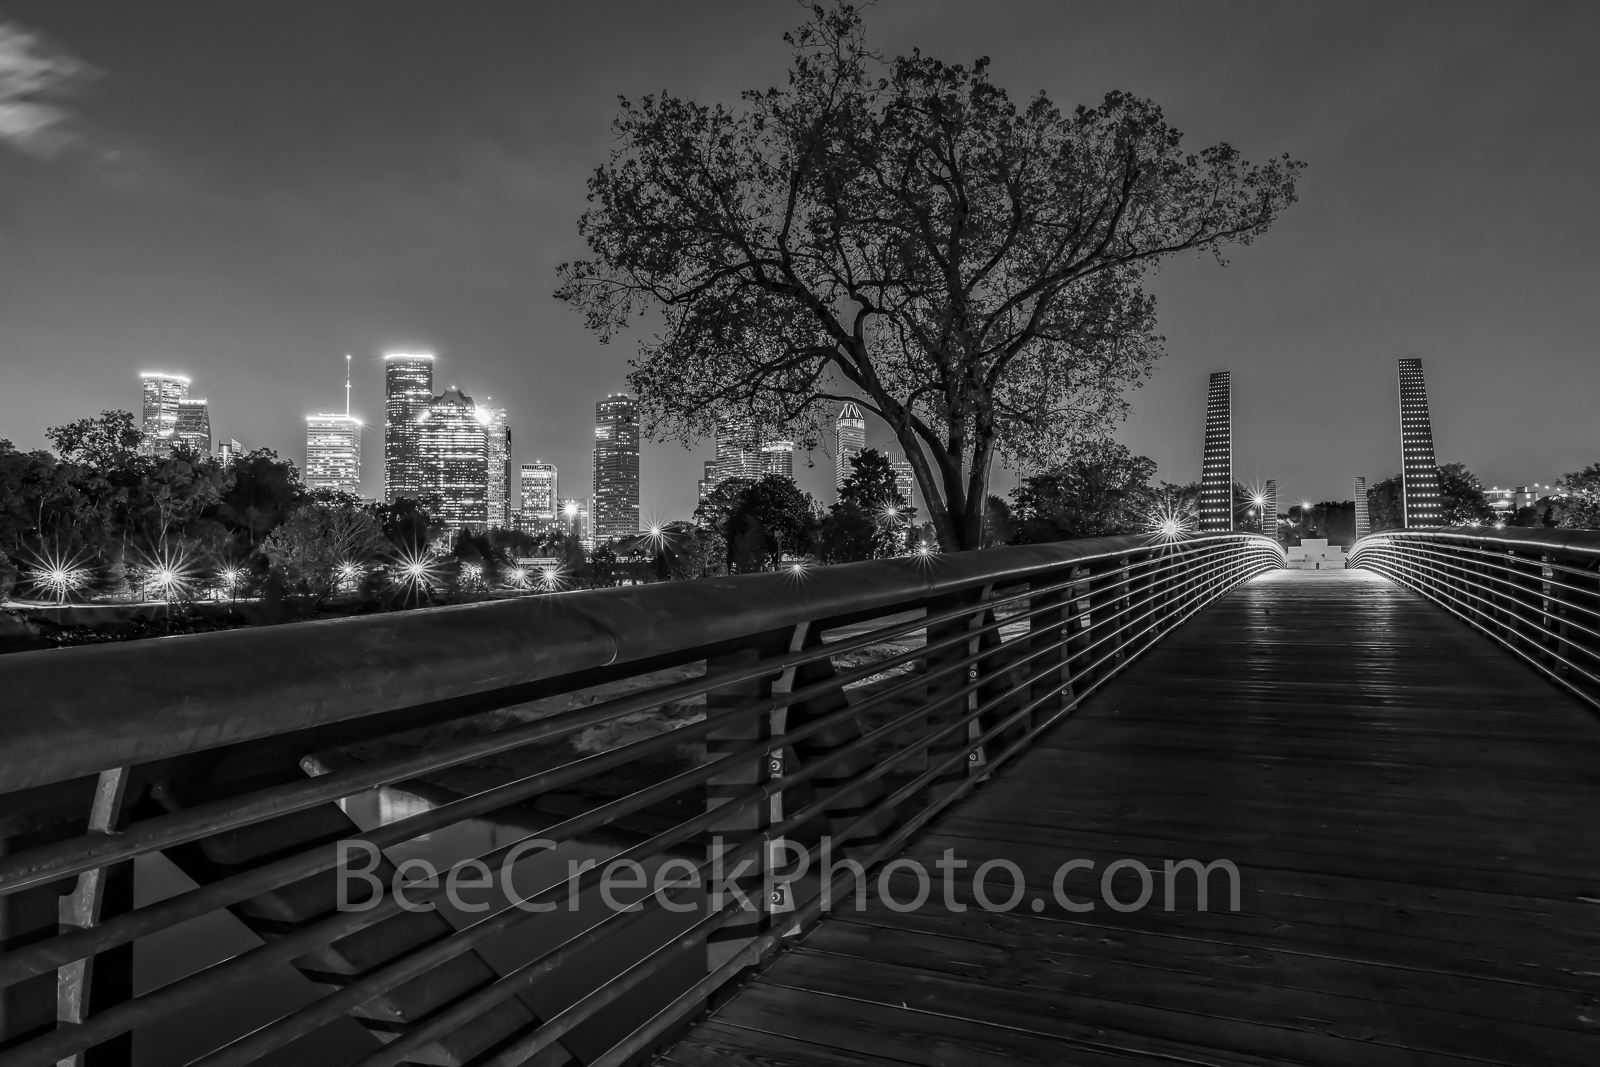 Houston skyline, houston, carruth pedestrian bridge, bw, black and white, bridge, Police Memorial, blue lights, Kinder Foundation, Buffalo Bayou, 160 acre park, shepherd drive, sabine street, dark,, photo